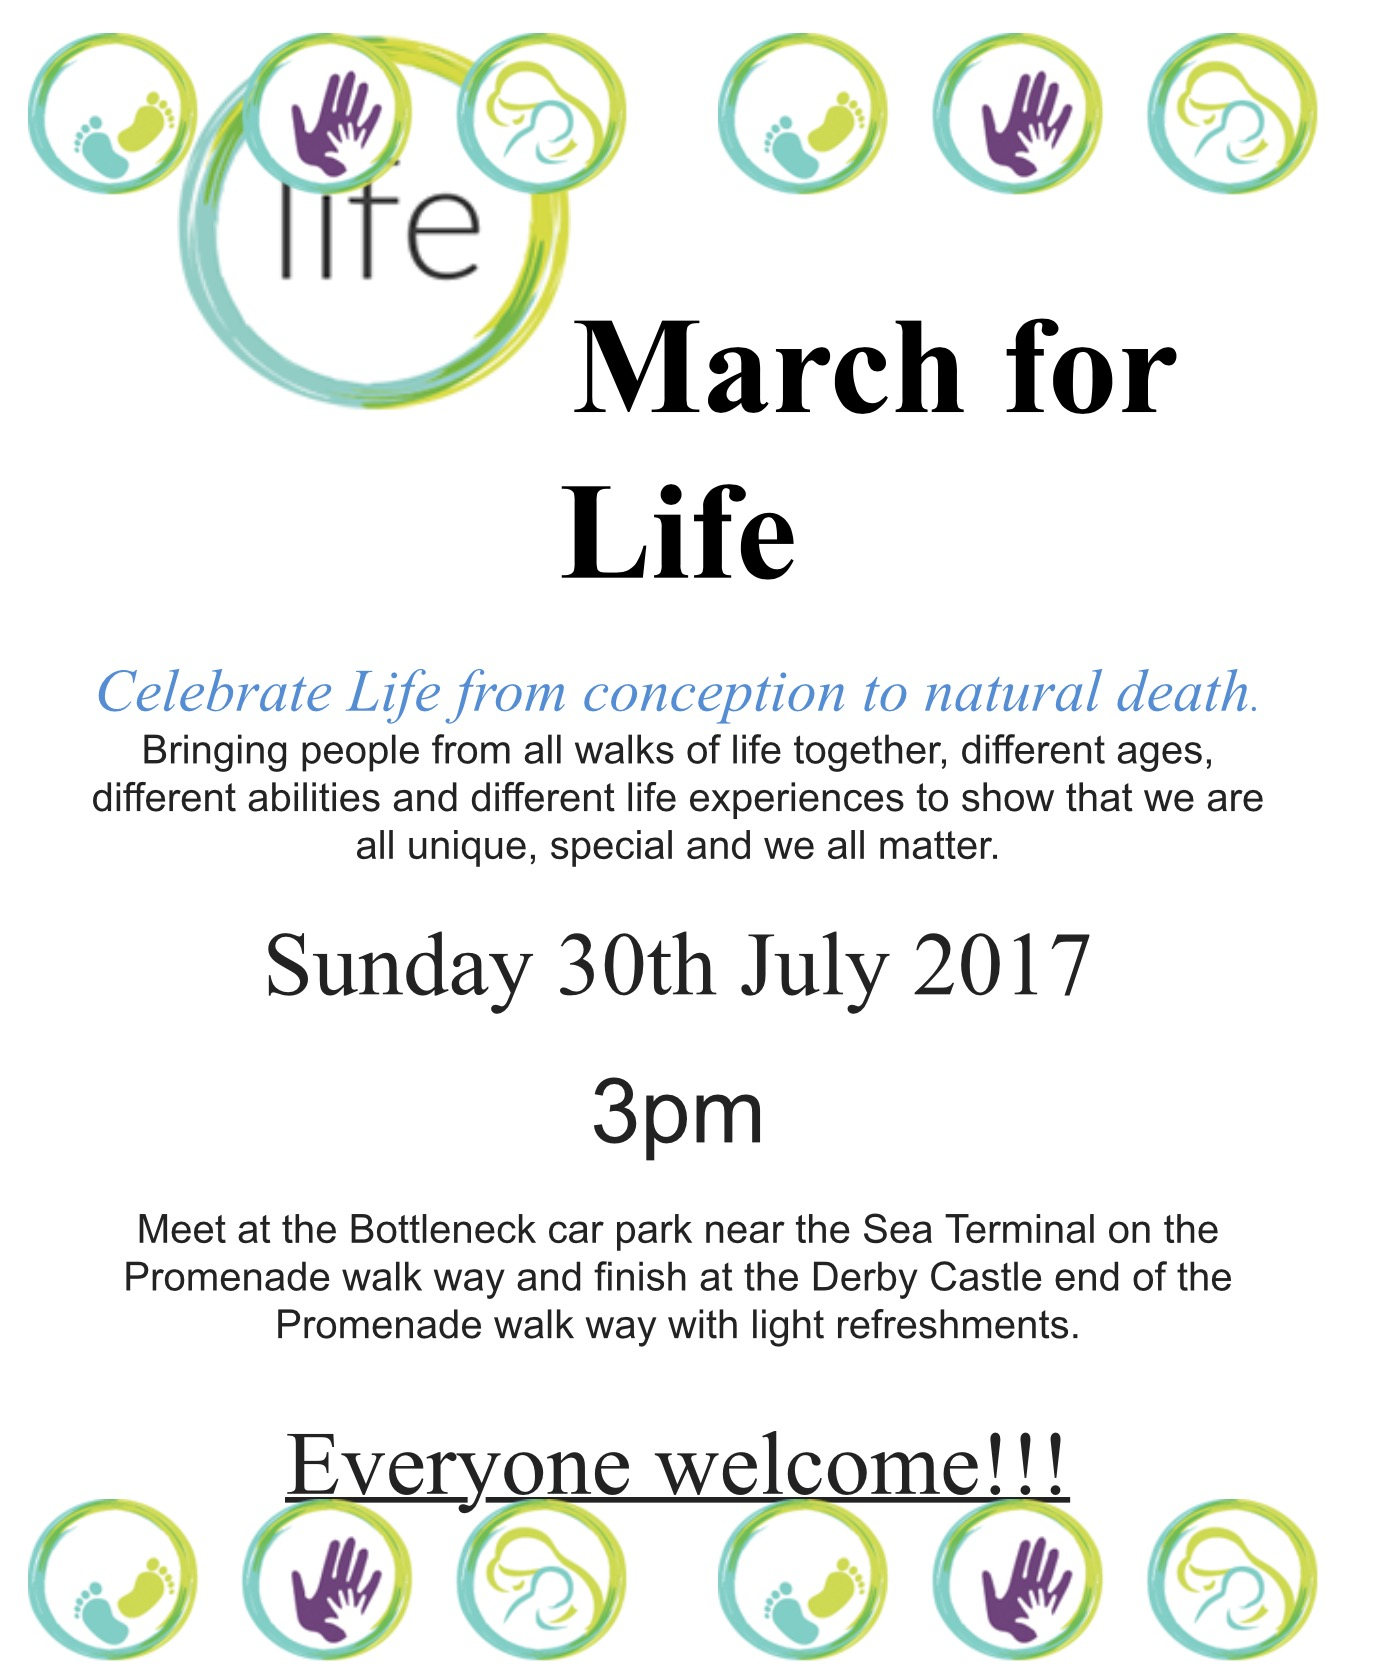 Event flyer, from the Life charity.